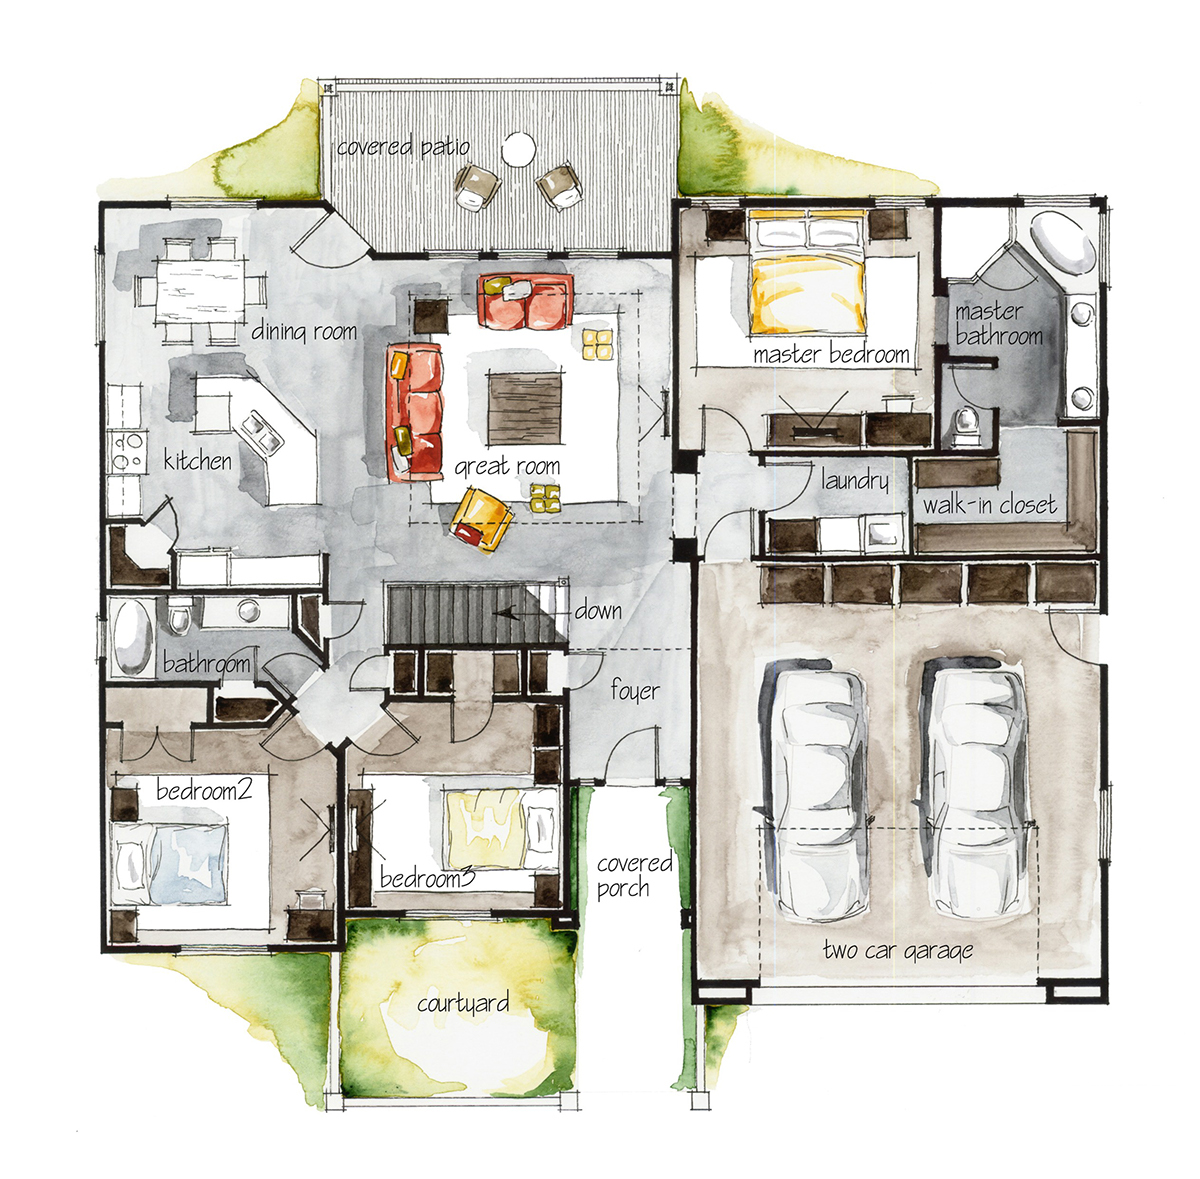 Real estate watercolor 2d floor plans part 3 on behance for Interior design plans